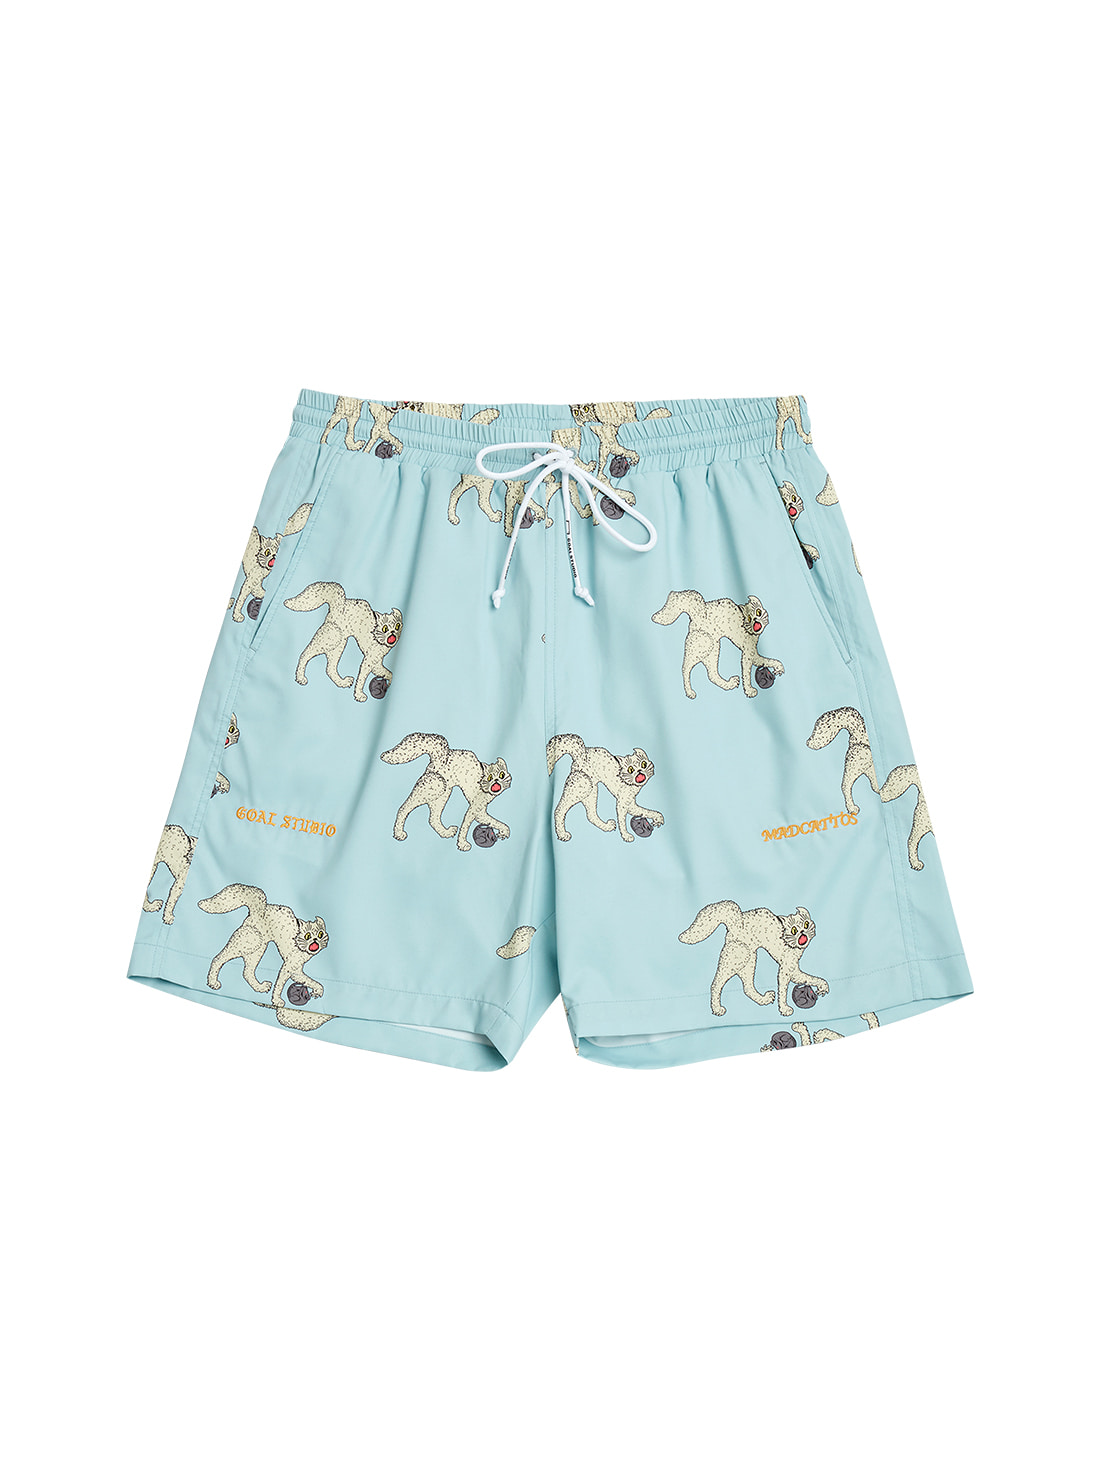 GOALSTUDIO MC ALL OVER PATTERN SHORTS - LIGHT BLUE